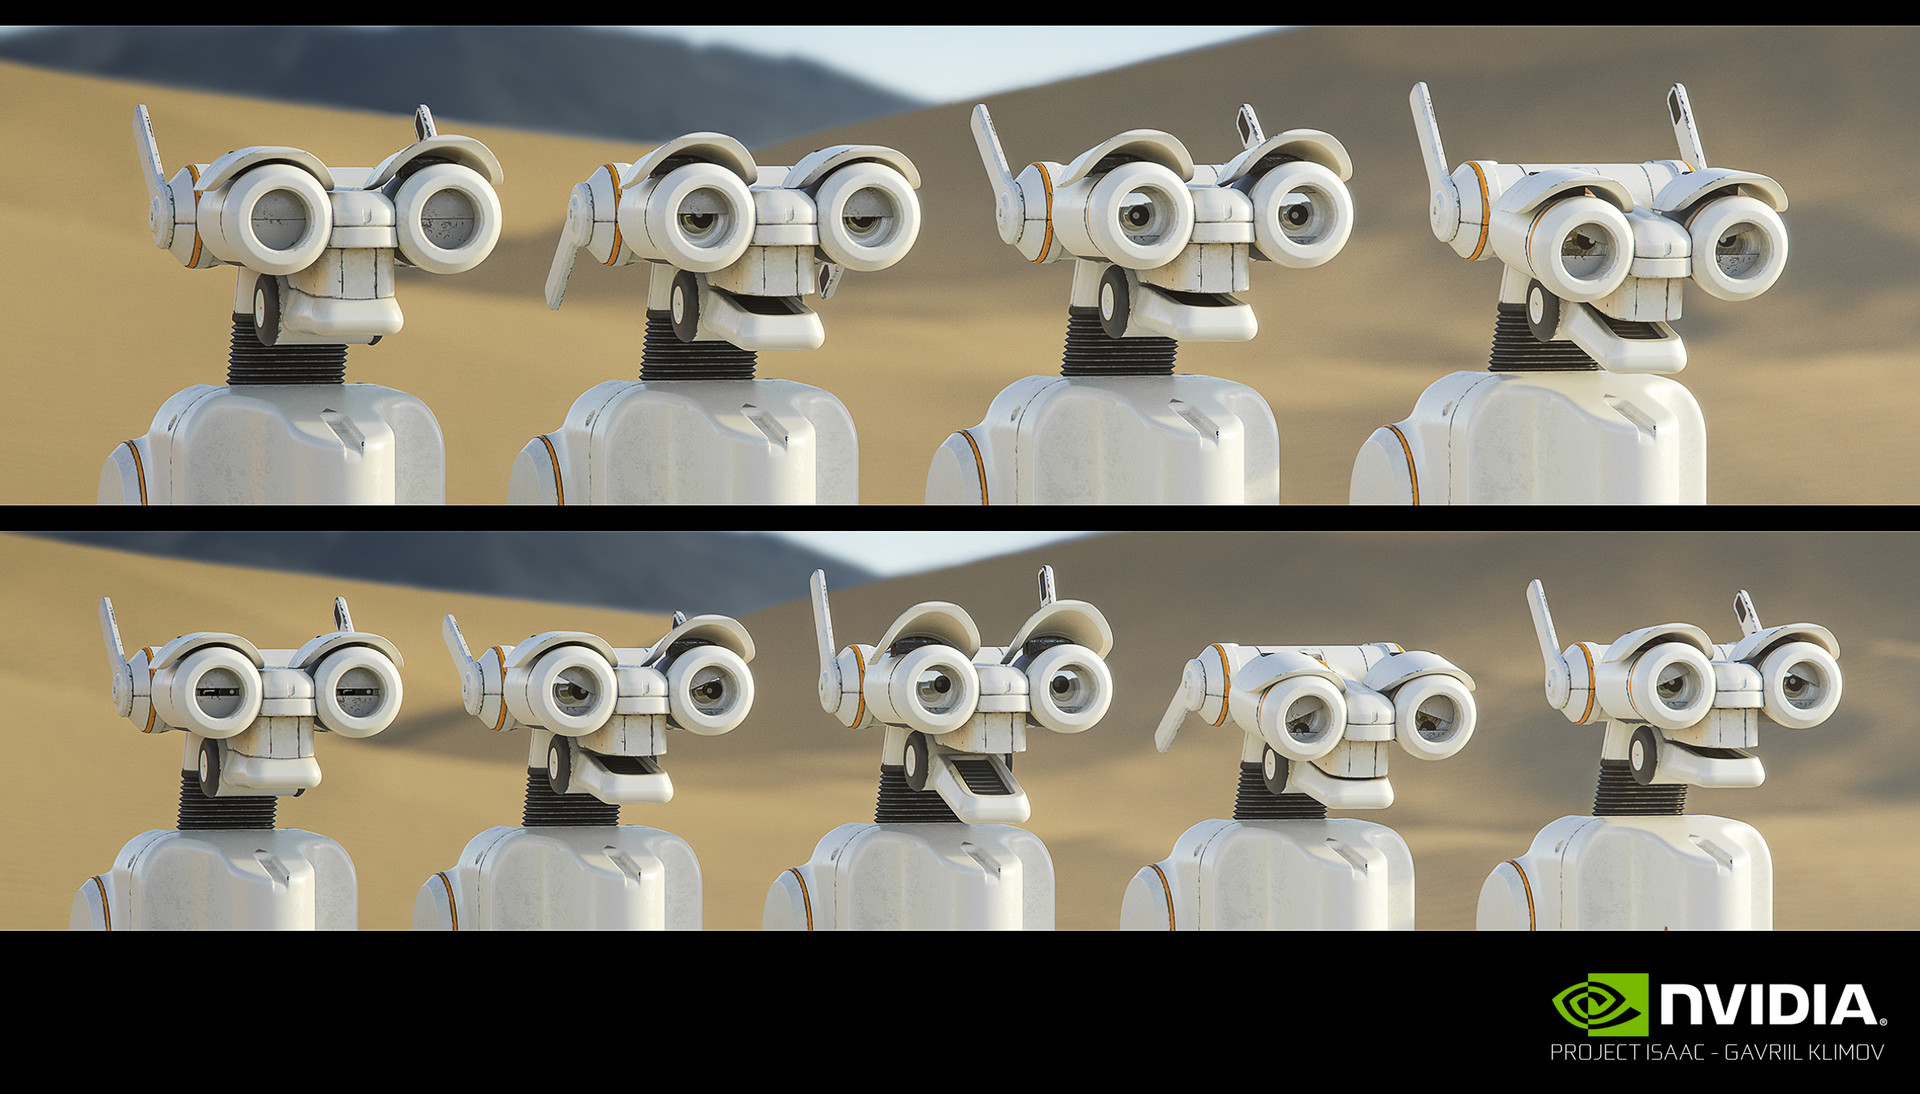 NVIDIA Isaac / Expression tests  These were early experiments on Isaac's possible range of emotions done by me and Andrej, the final animations were handled by our lead animator Brian Robison who did an outstanding job.